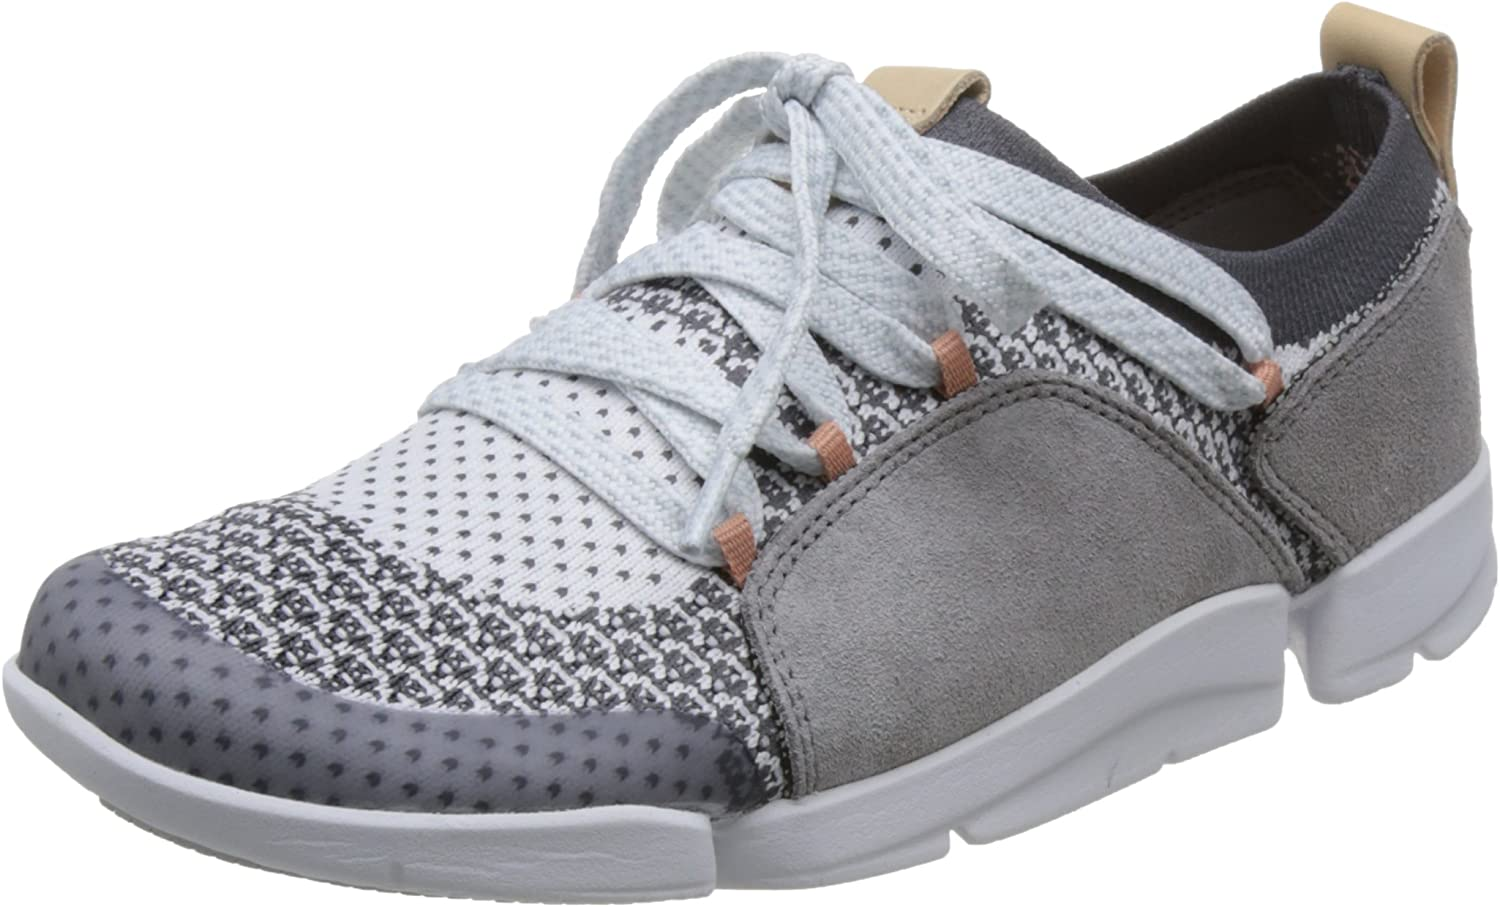 Clarks Women's Tri Amelia Low-Top Sneakers